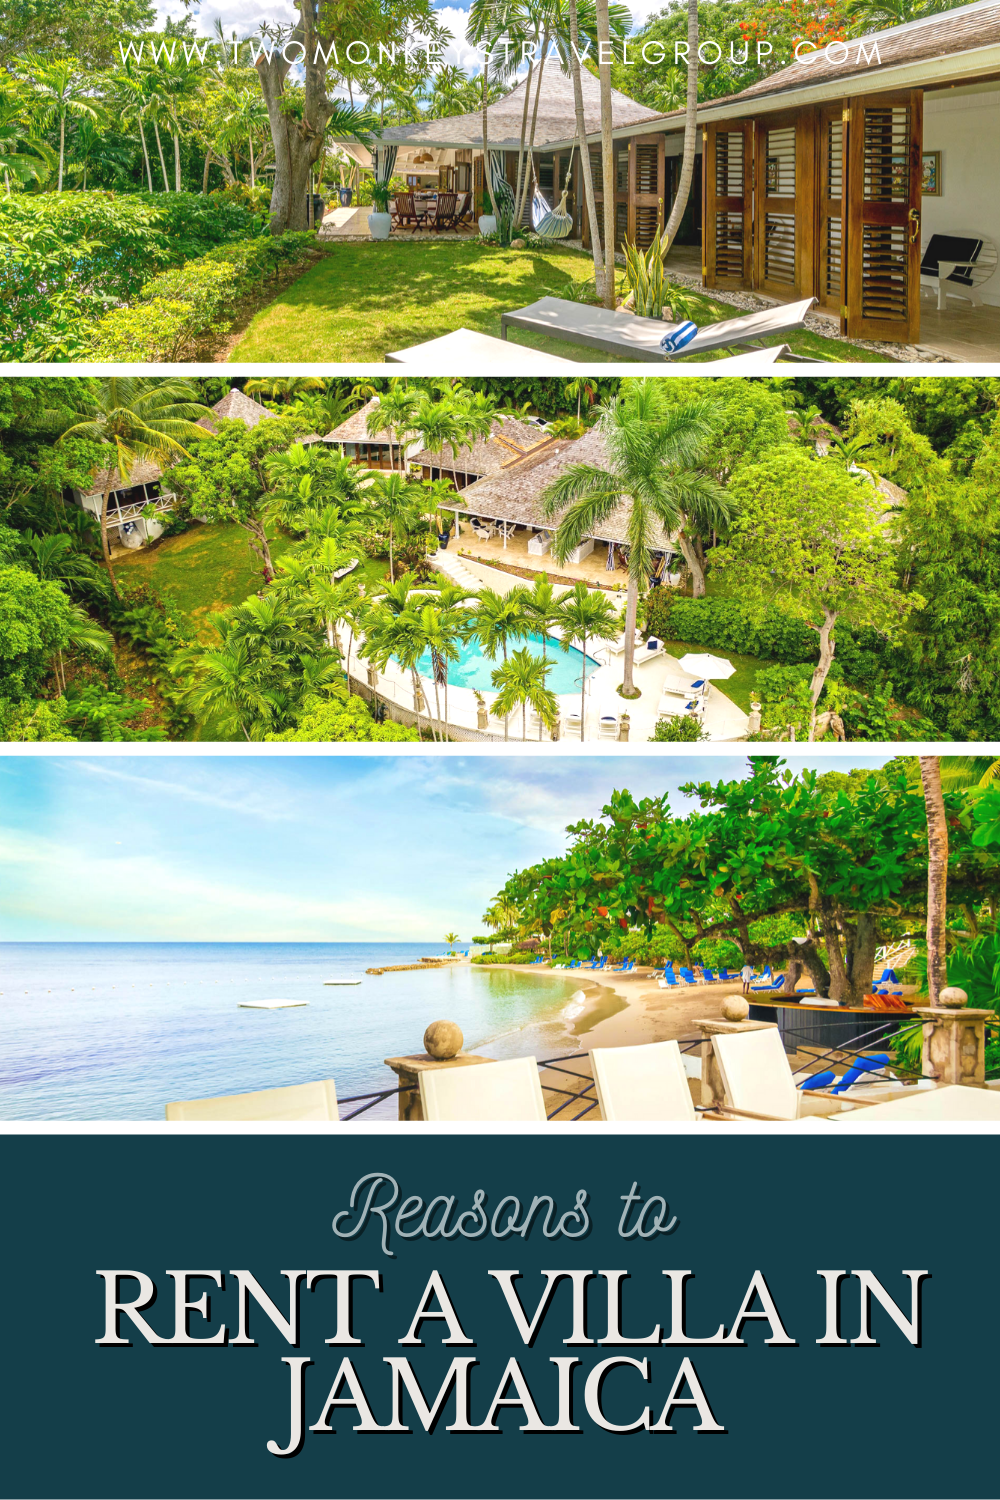 3 Reasons to Rent a Villa in Jamaica